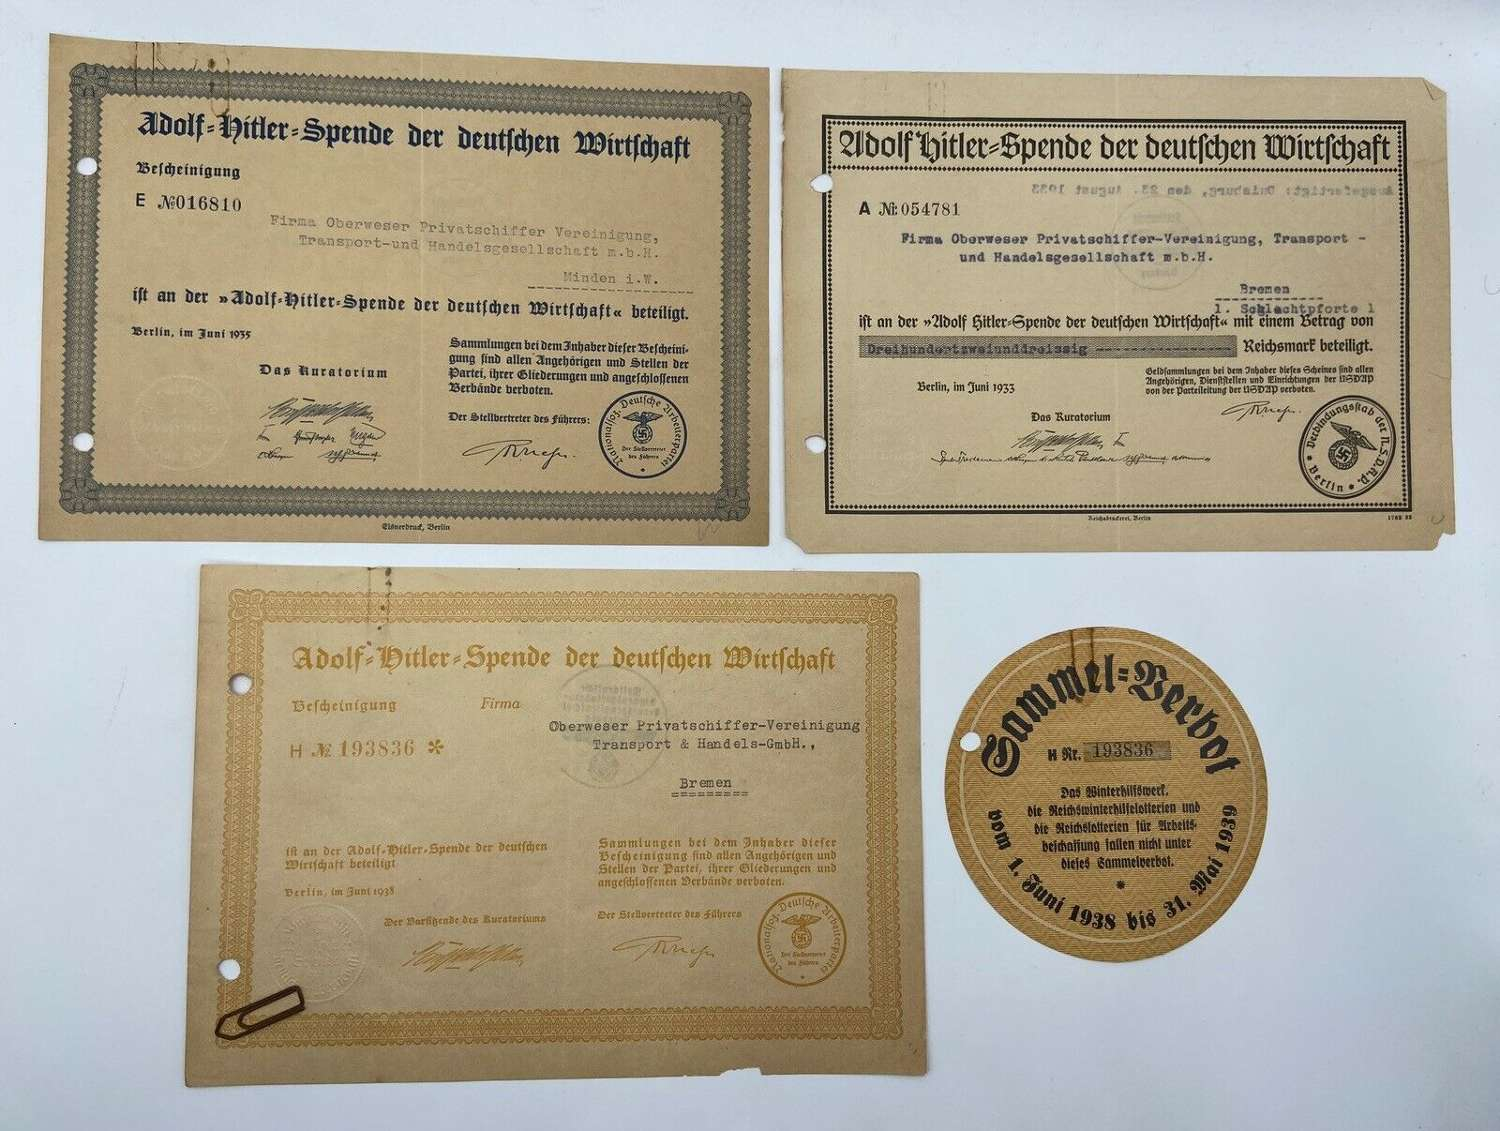 WW2 German Adolf Hitler Fund Trade  Industry Huge Donation Certificate